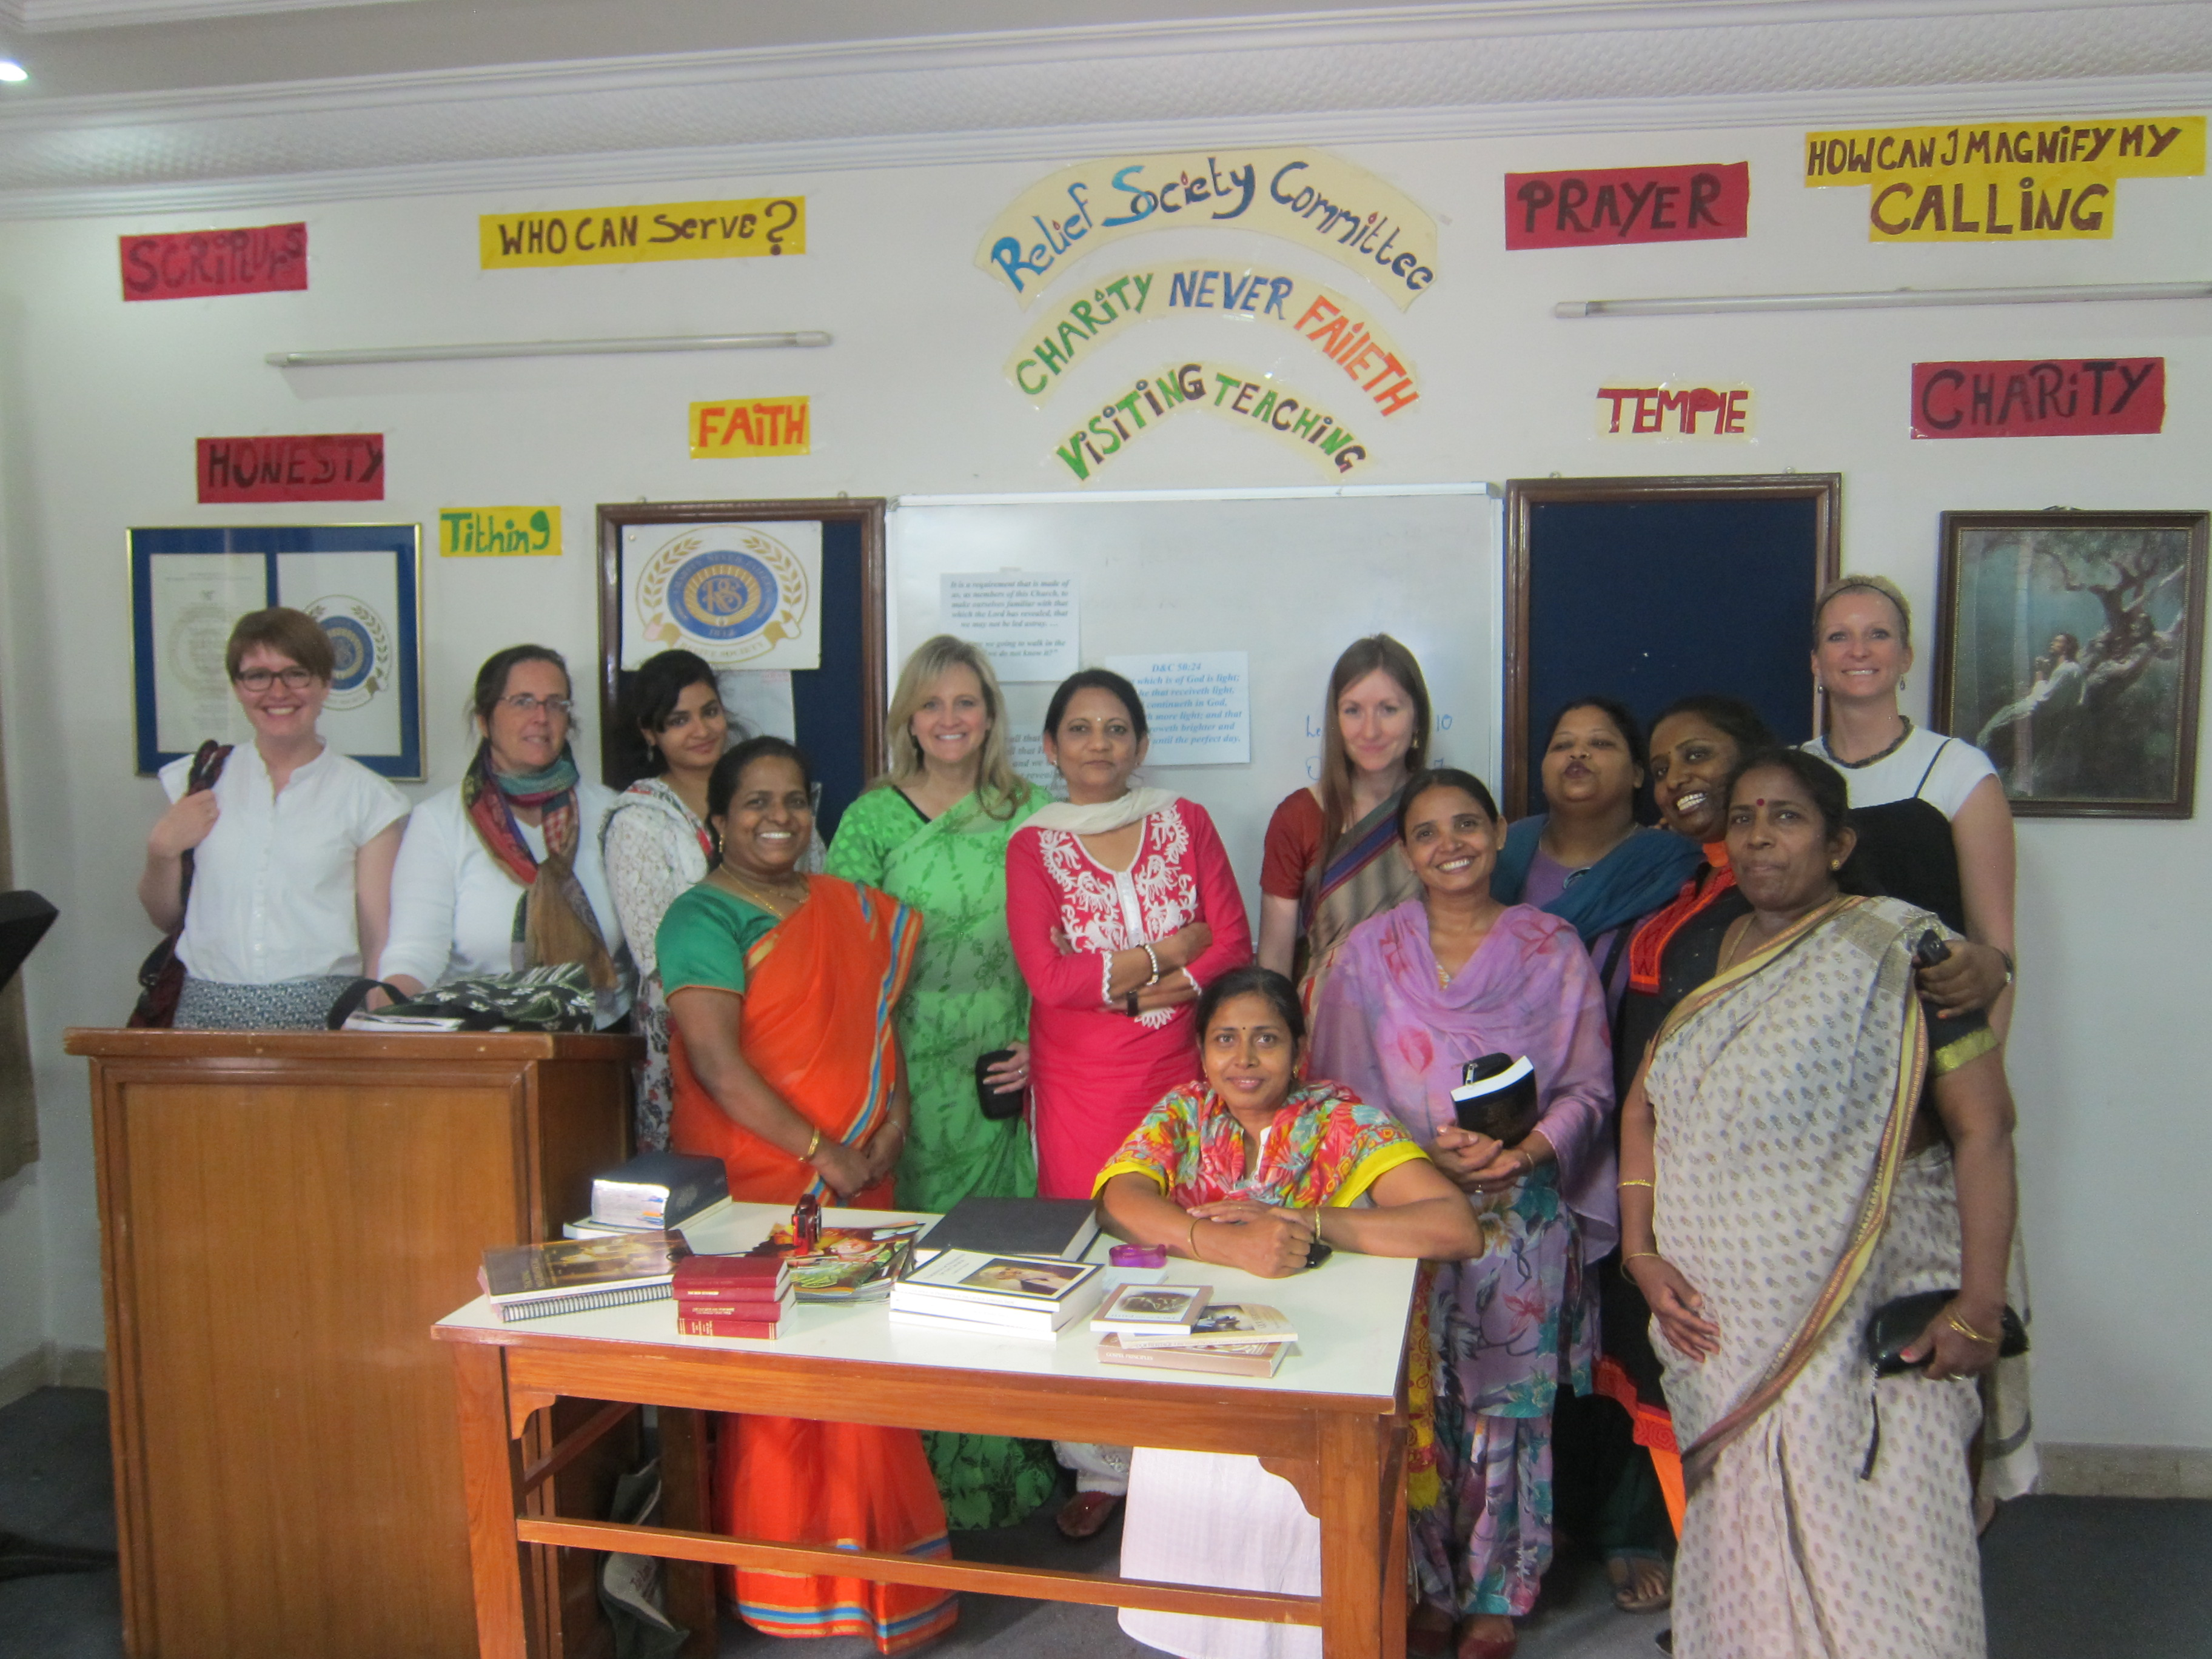 Taunalyn Rutherford, in green, stands with Relief Society sisters during academic research in New Delhi, India, in 2014.